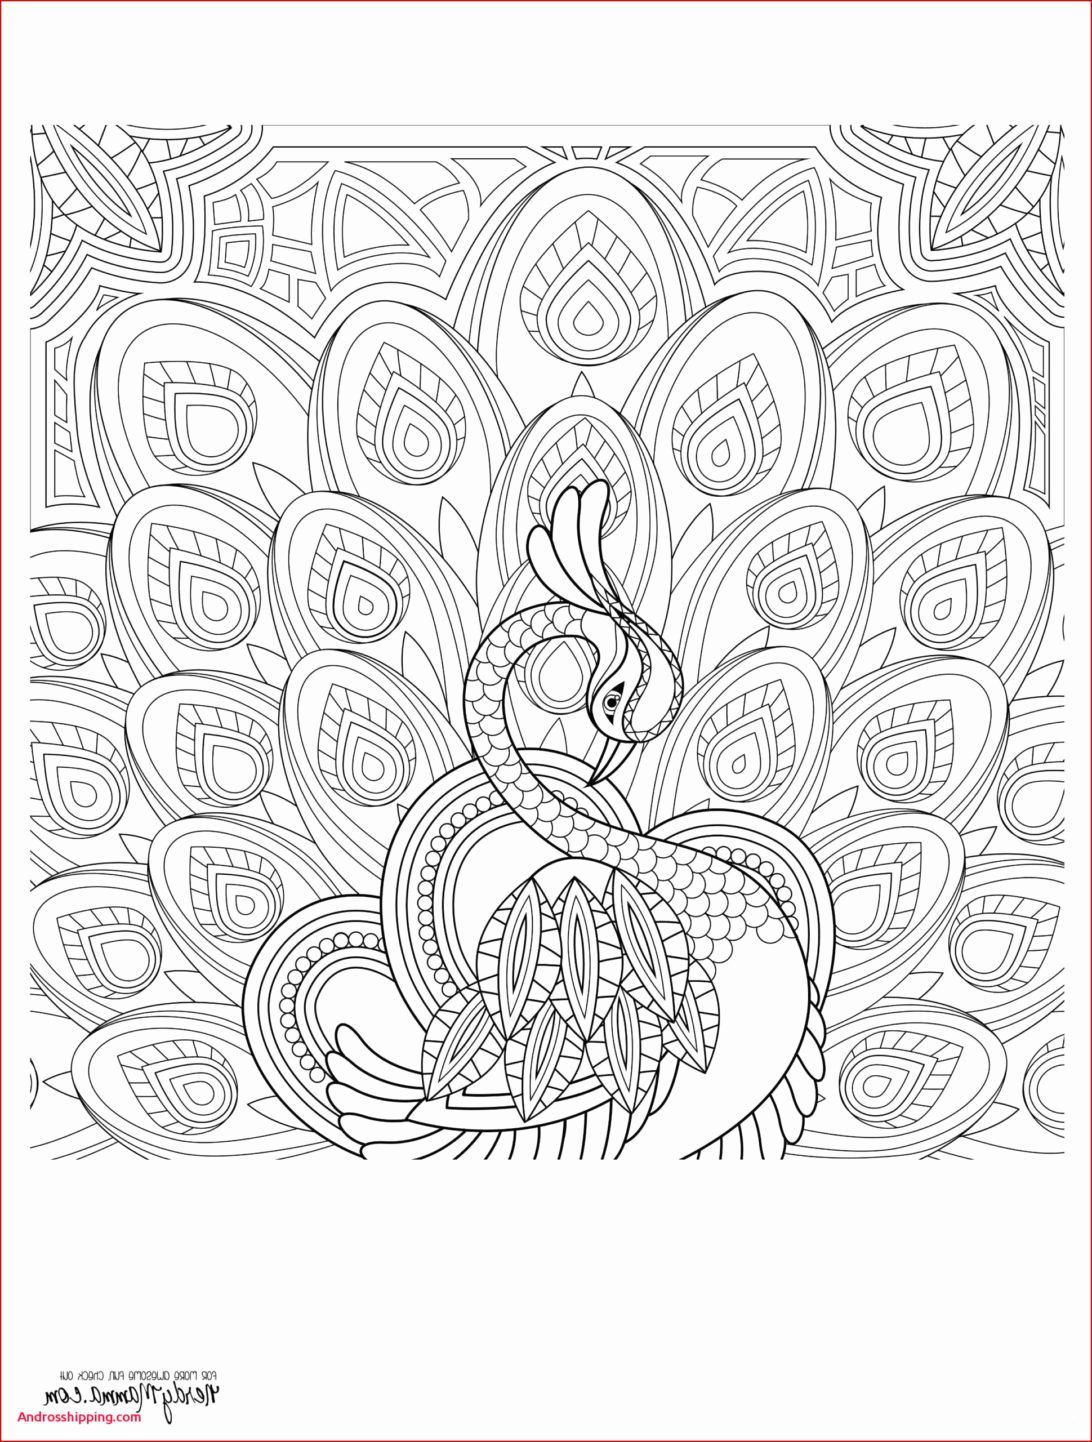 Color By Number Printable For Adults Luxury Coloring Pages Coloring Free Advanced Col Space Coloring Pages Summer Coloring Pages Merry Christmas Coloring Pages